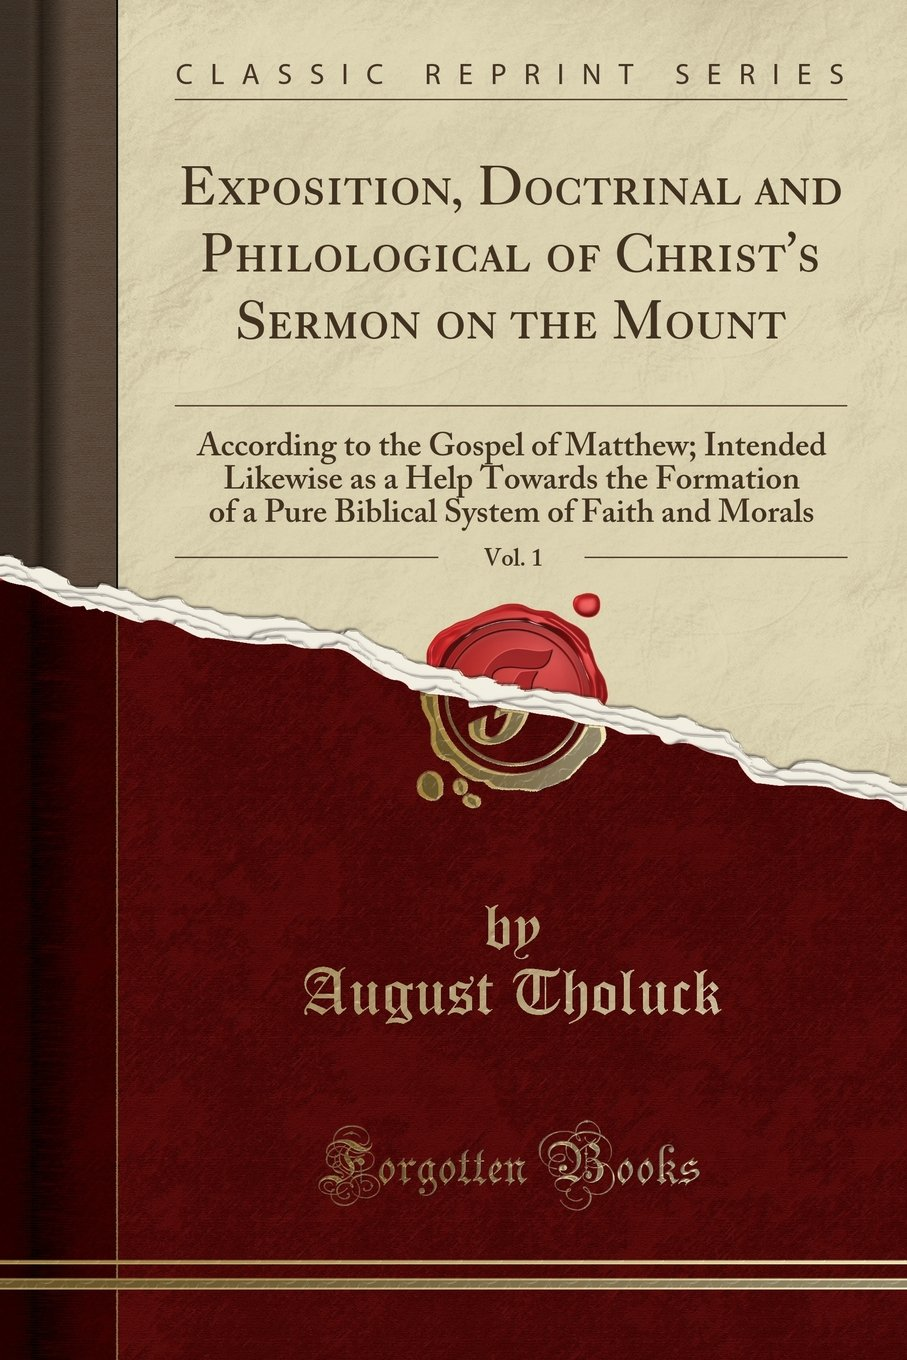 Exposition, Doctrinal and Philological of Christ's Sermon on the Mount, Vol. 1: According to the Gospel of Matthew; Intended Likewise as a Help ... System of Faith and Morals (Classic Reprint) pdf epub